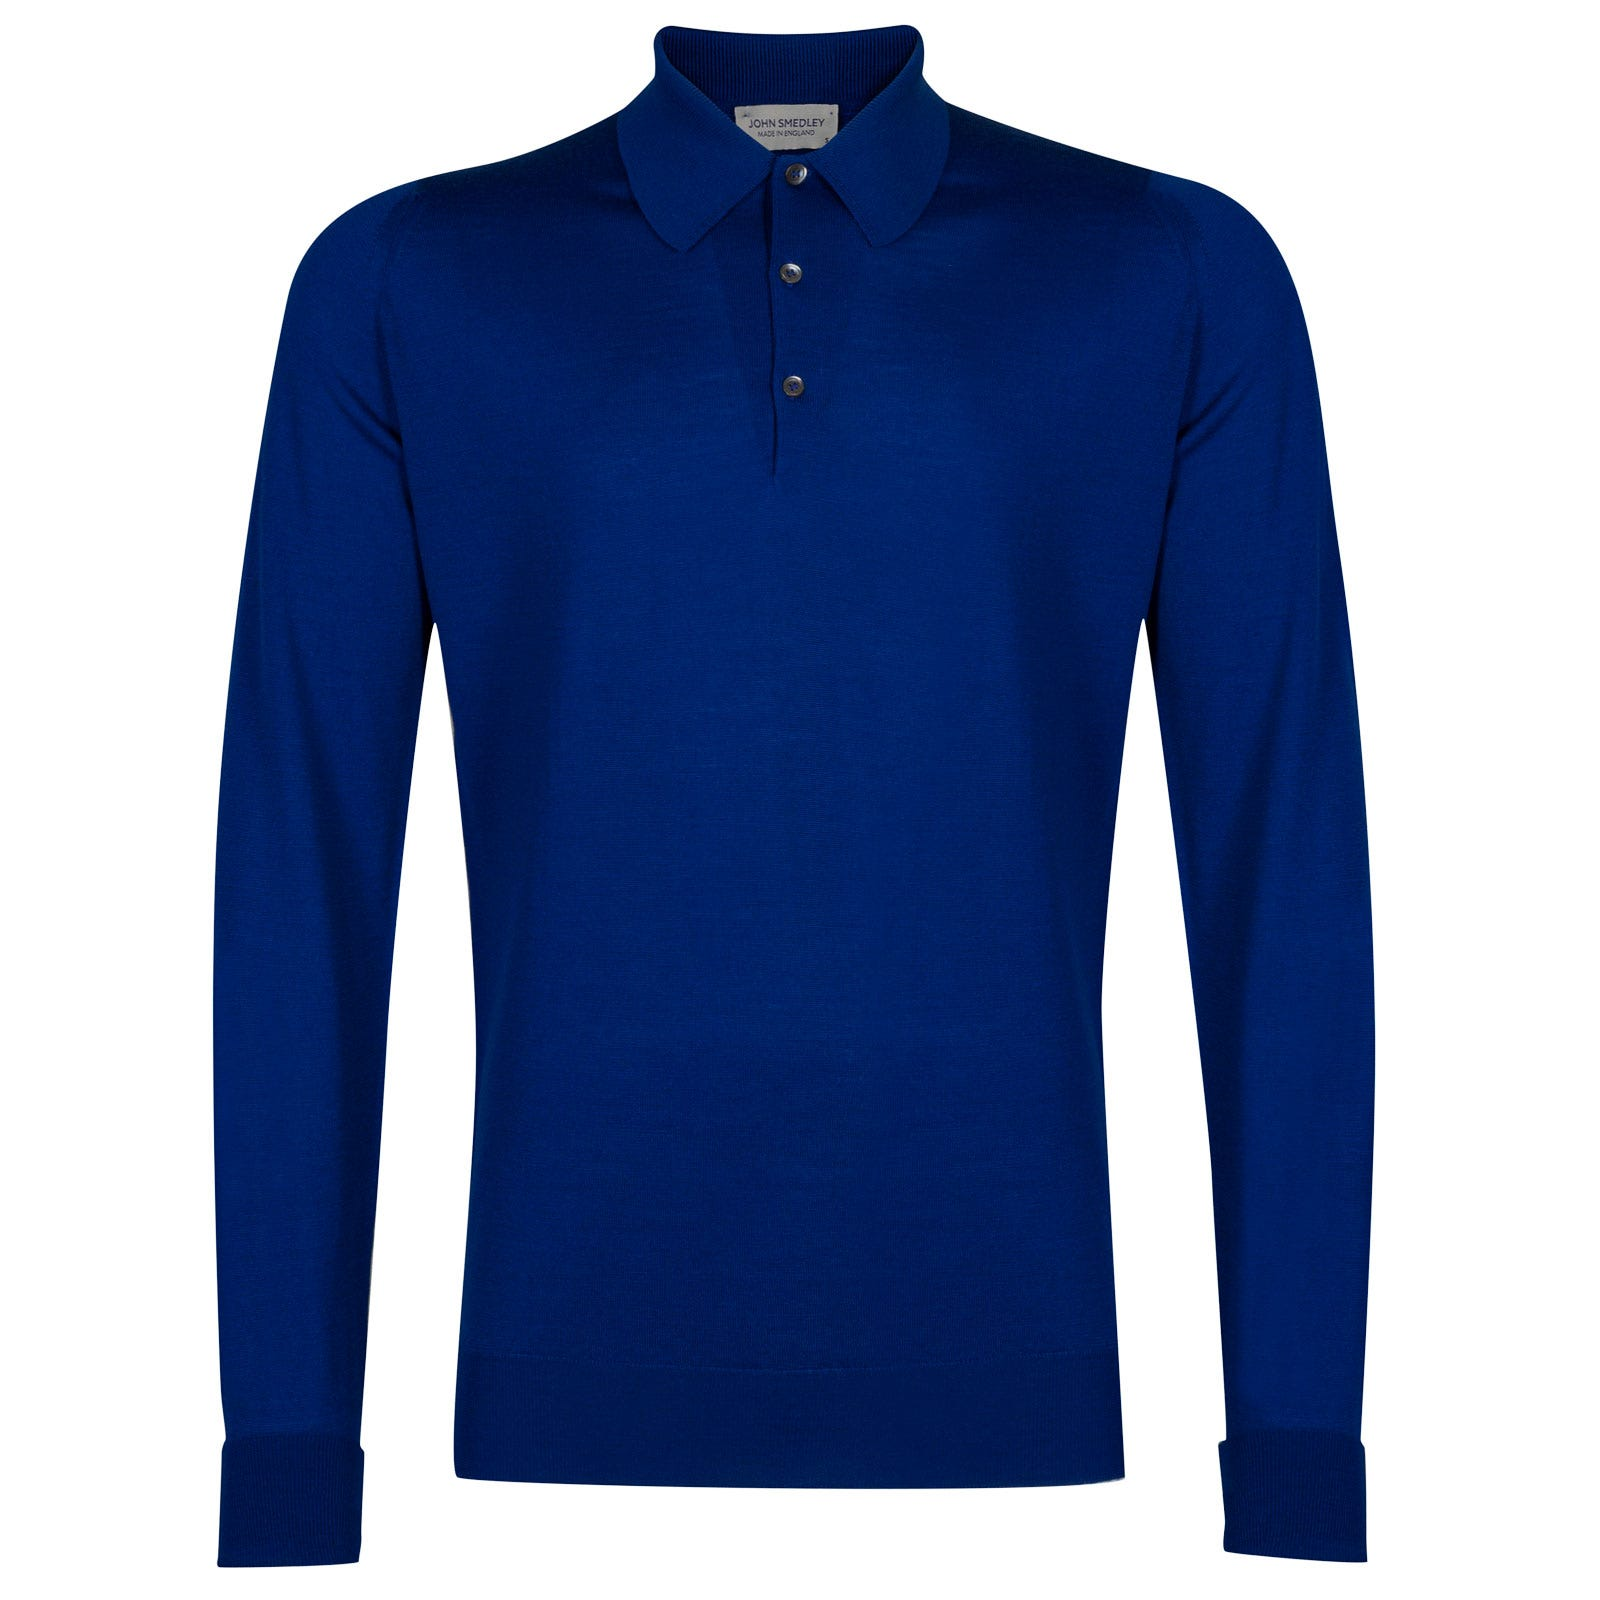 John Smedley dorset Merino Wool Shirt in Coniston Blue-XXL